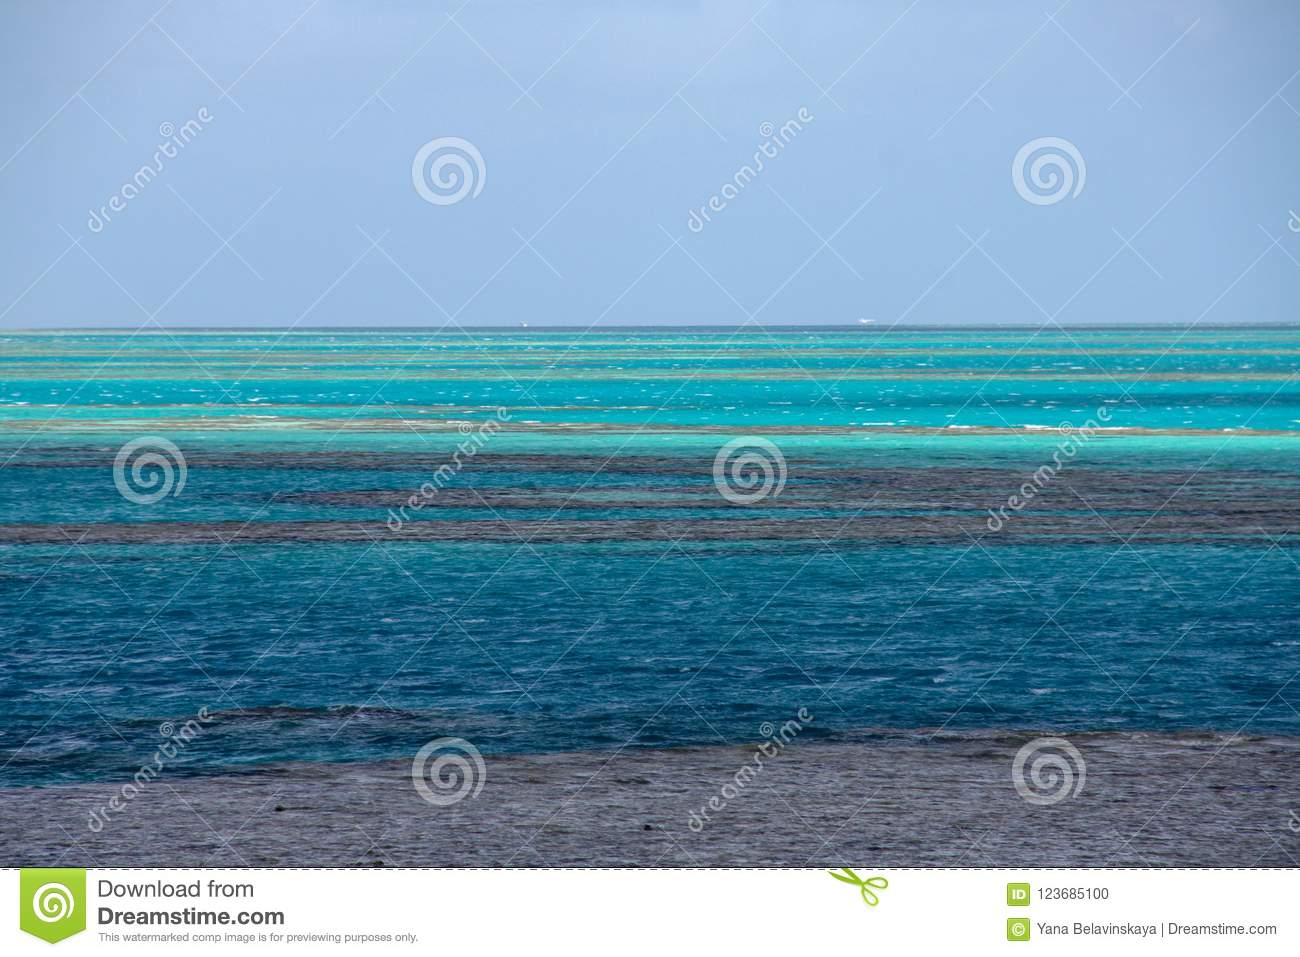 Picturesque blue ocean on Great Barrier Reef